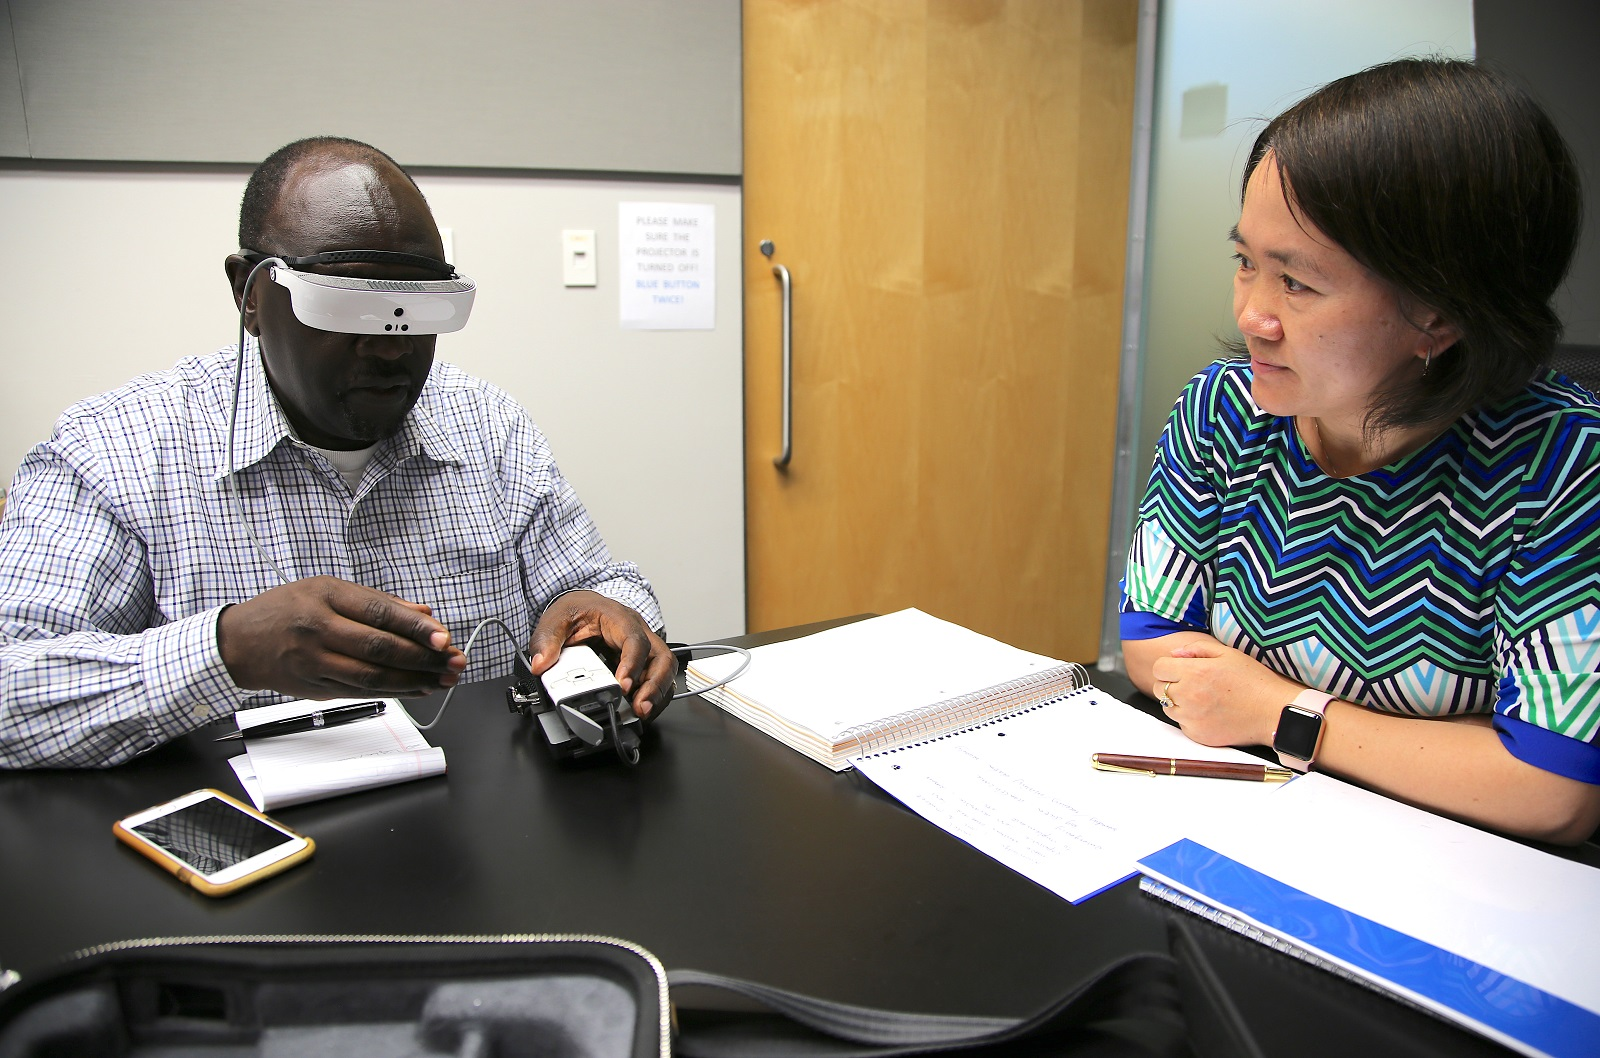 Electronic Glasses Bring Sight to Low Vision and Legally Blind